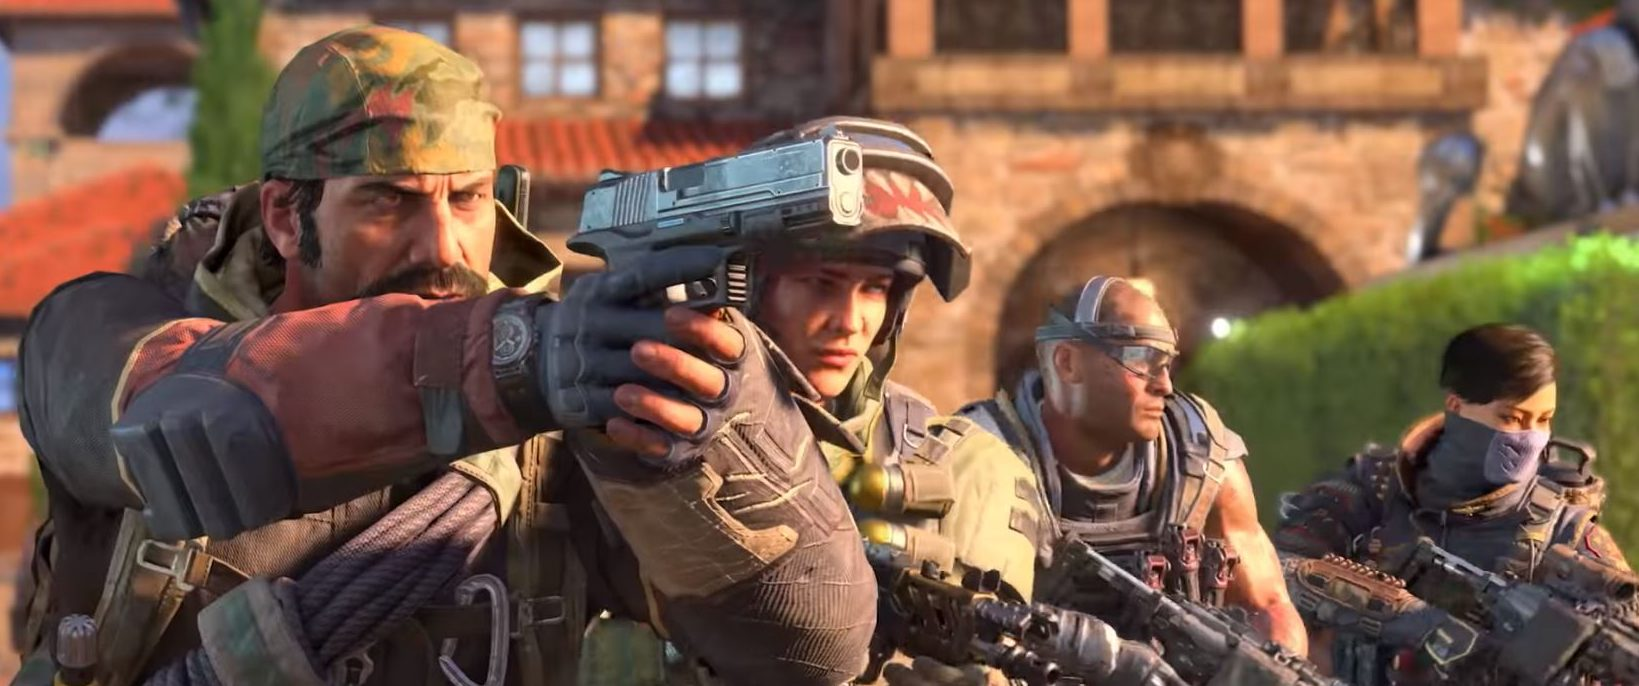 Hat Call of Duty: Black Ops 4 verstanden, warum Fortnite so ein Hit ist?